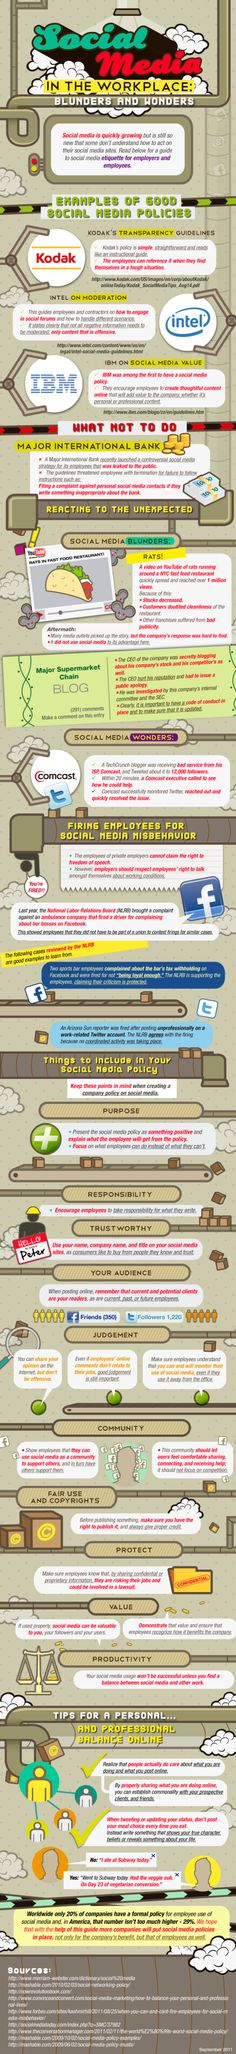 Social Media in Workplace Infographic